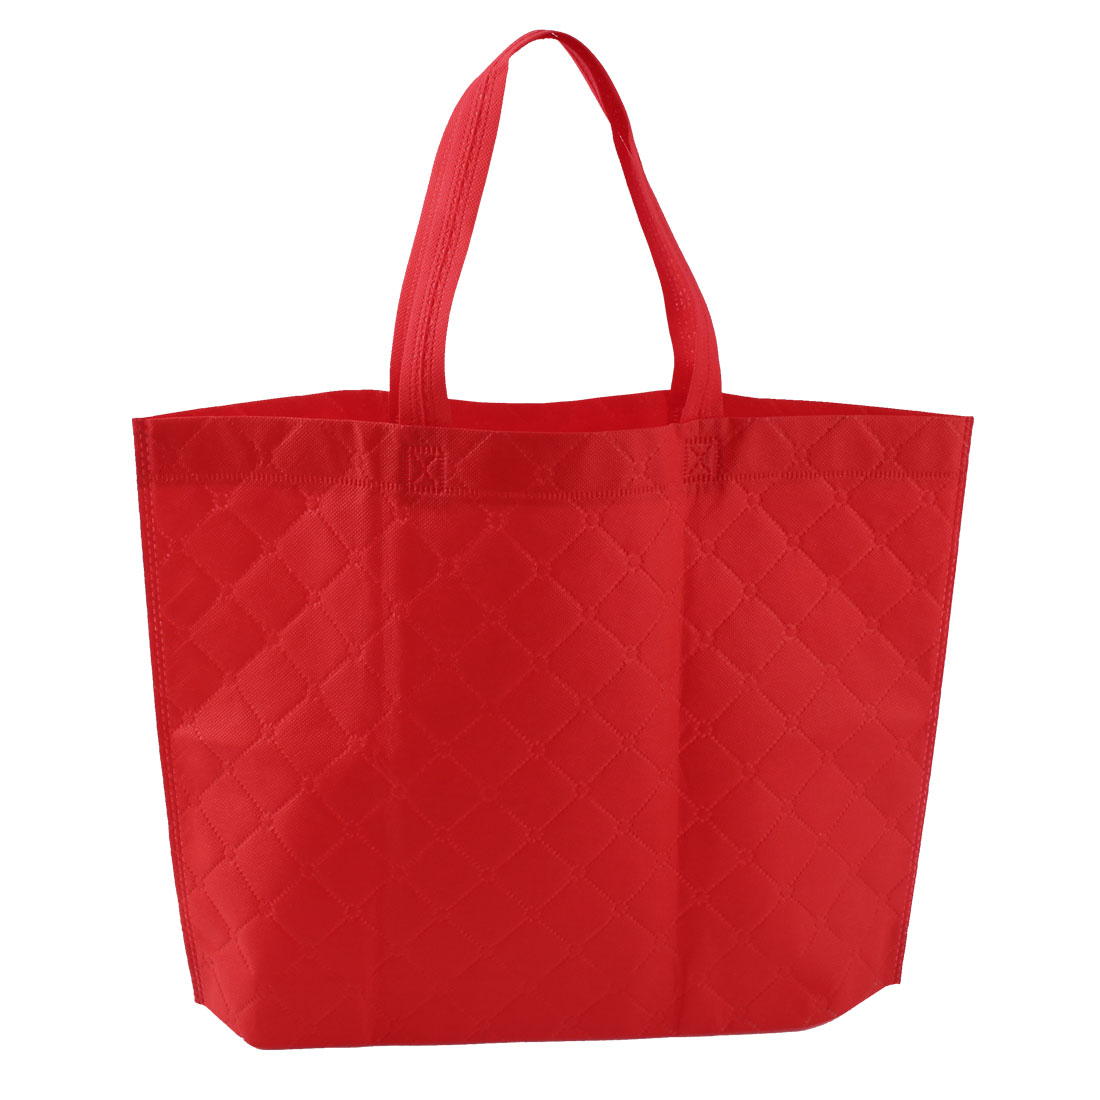 "16.9"" Length Non-Woven Environmentally Red Shopping Bag for Saving Resources"